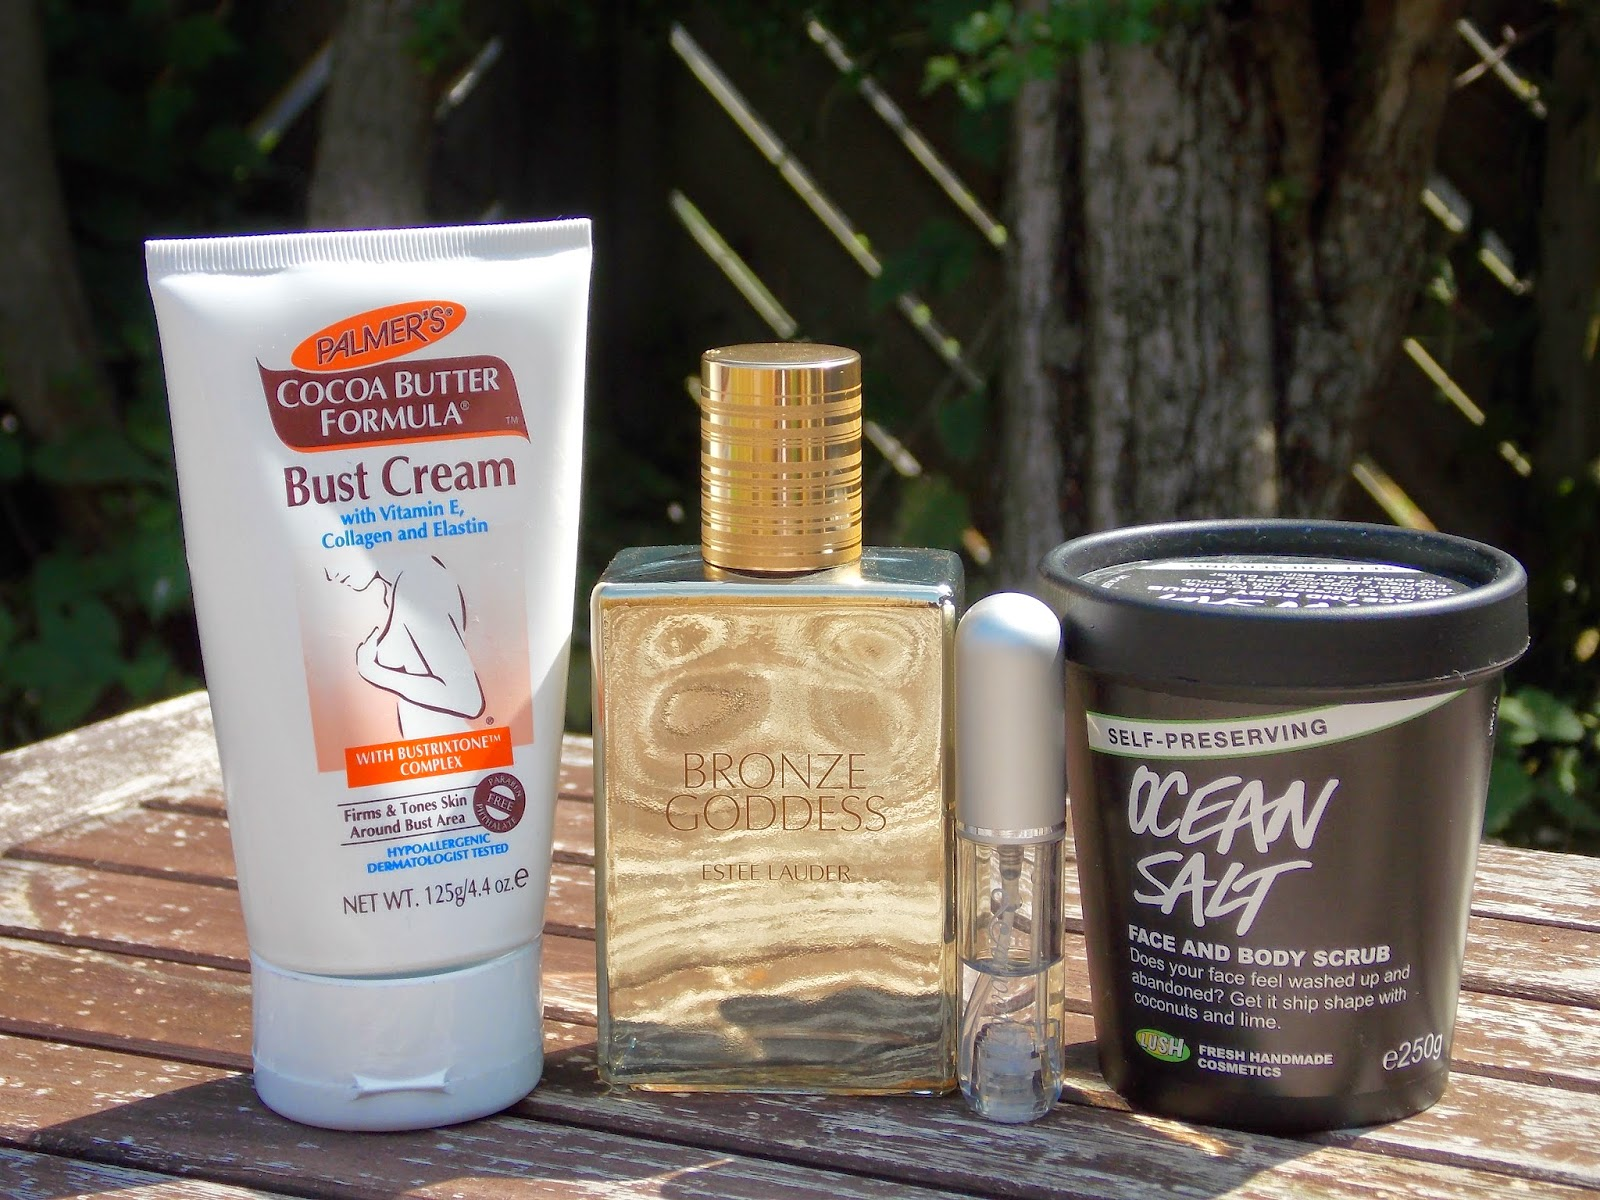 Palmer's Cocoa Butter Formula Bust, Estee Lauder Bronze Goddess Eau Fraiche Skinscent, Travolo and Lush Ocean Salt Face and Body Scrub